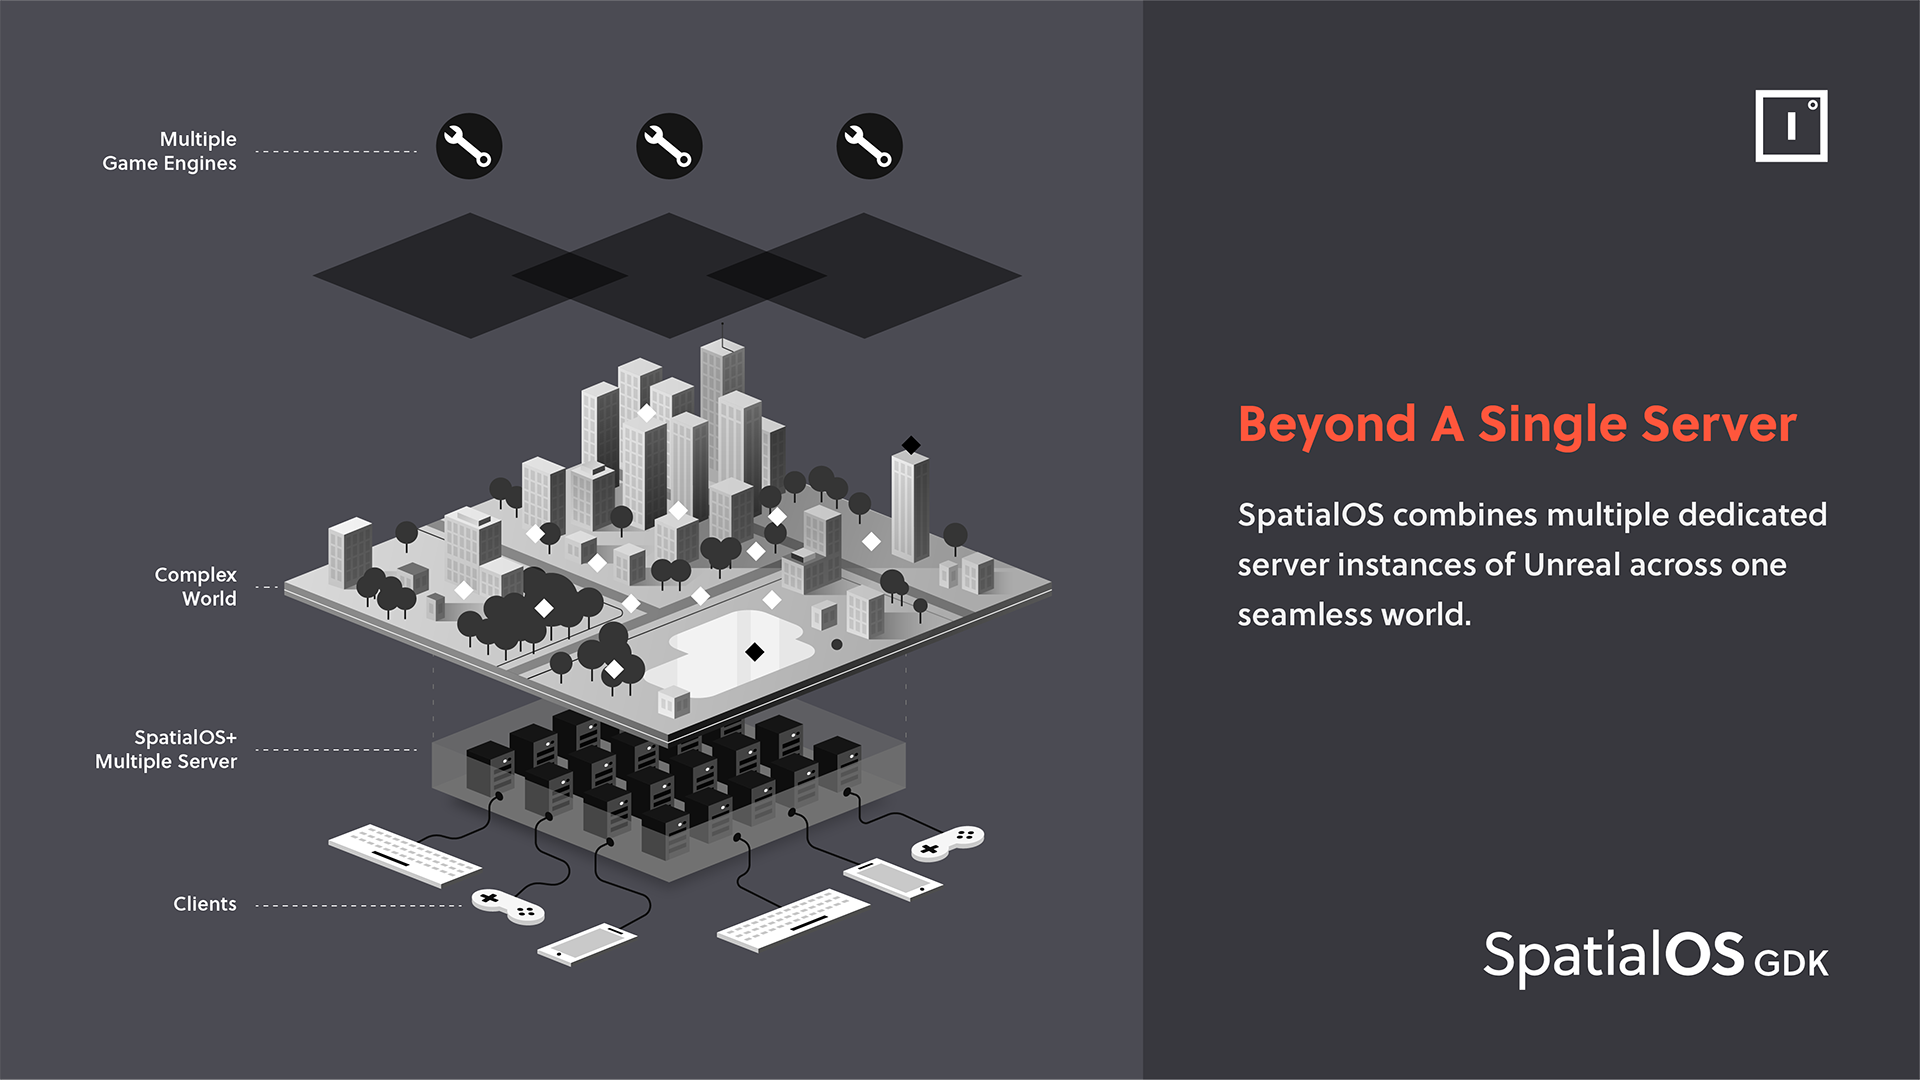 SpatialOS GDK for Unreal Now Available